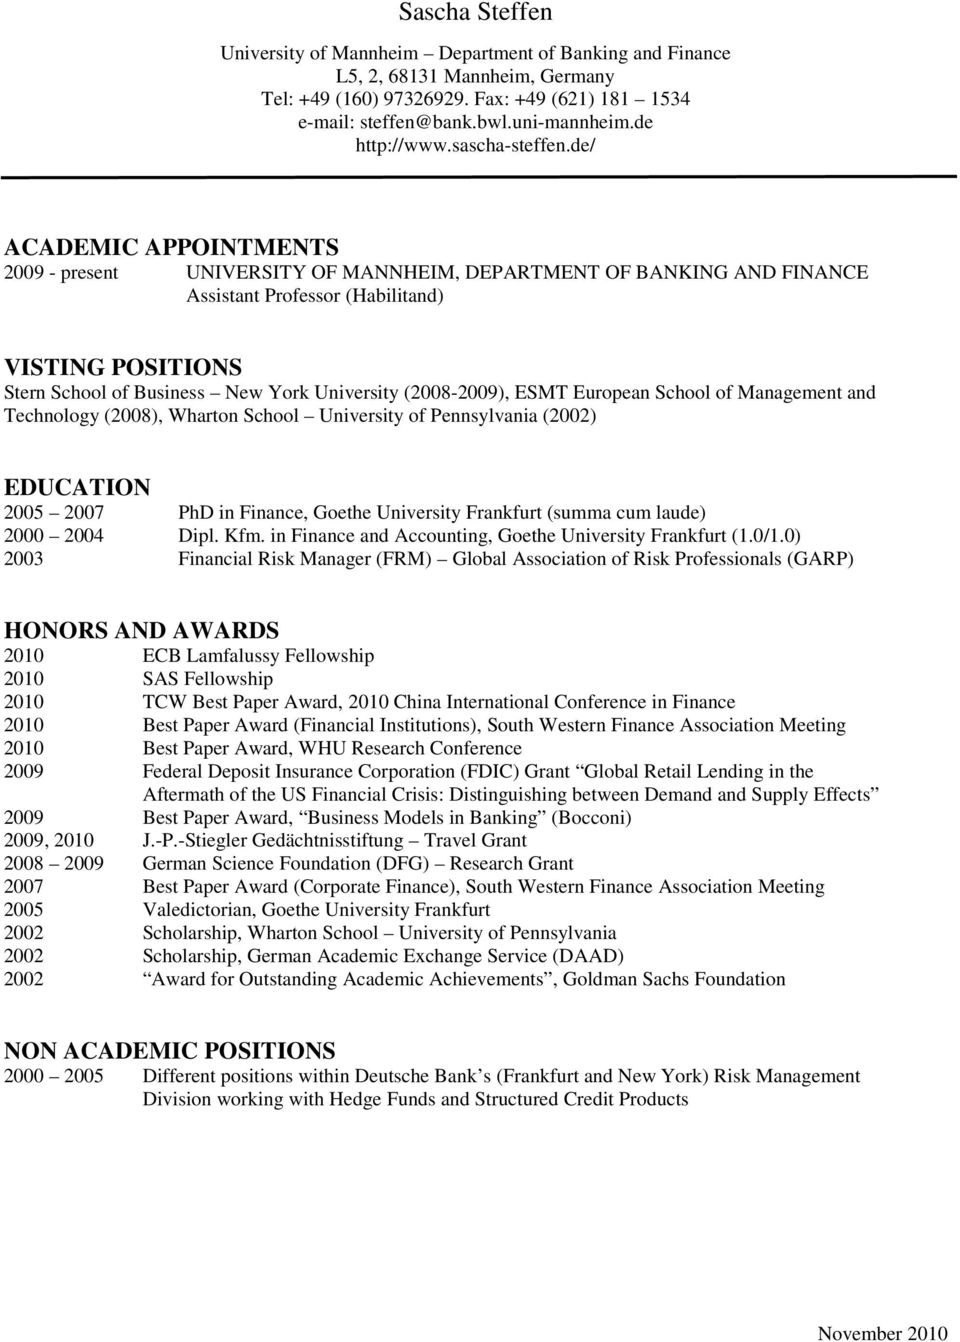 de/ ACADEMIC APPOINTMENTS 2009 - present UNIVERSITY OF MANNHEIM, DEPARTMENT OF BANKING AND FINANCE Assistant Professor (Habilitand) VISTING POSITIONS Stern School of Business New York University